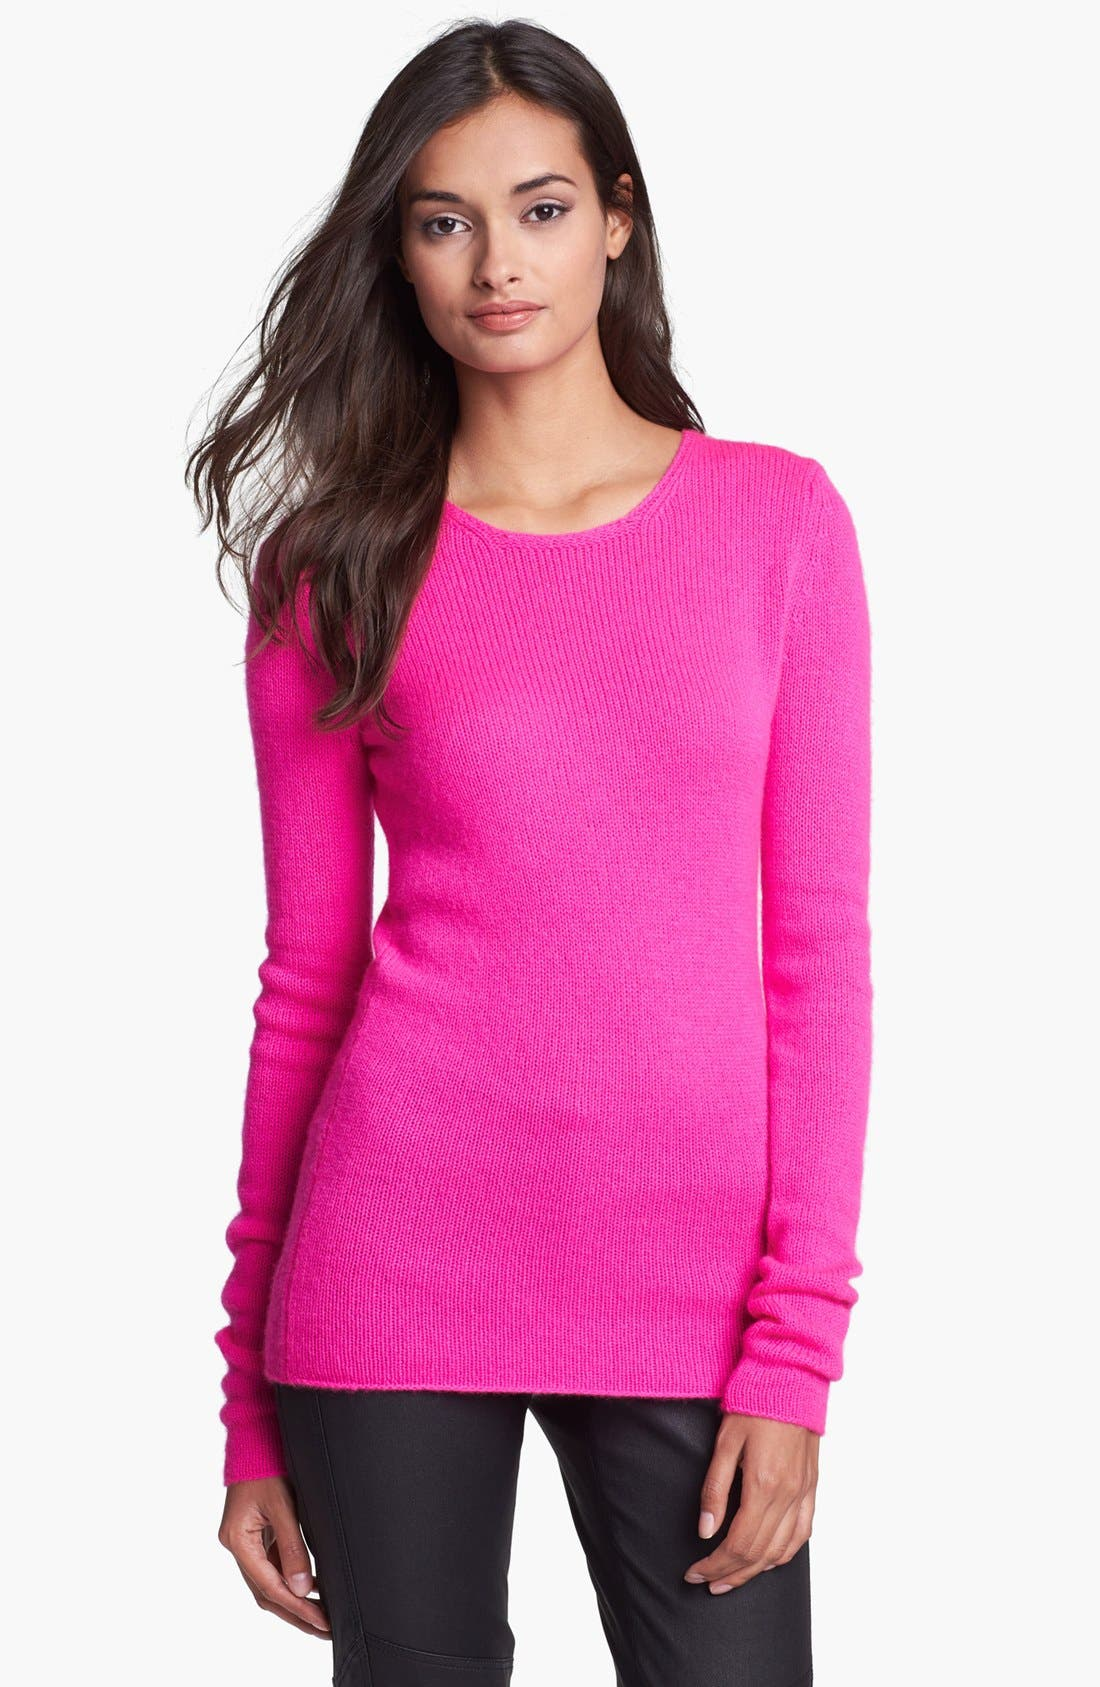 Alternate Image 1 Selected - Diane von Furstenberg 'Niseko' Cashmere Sweater